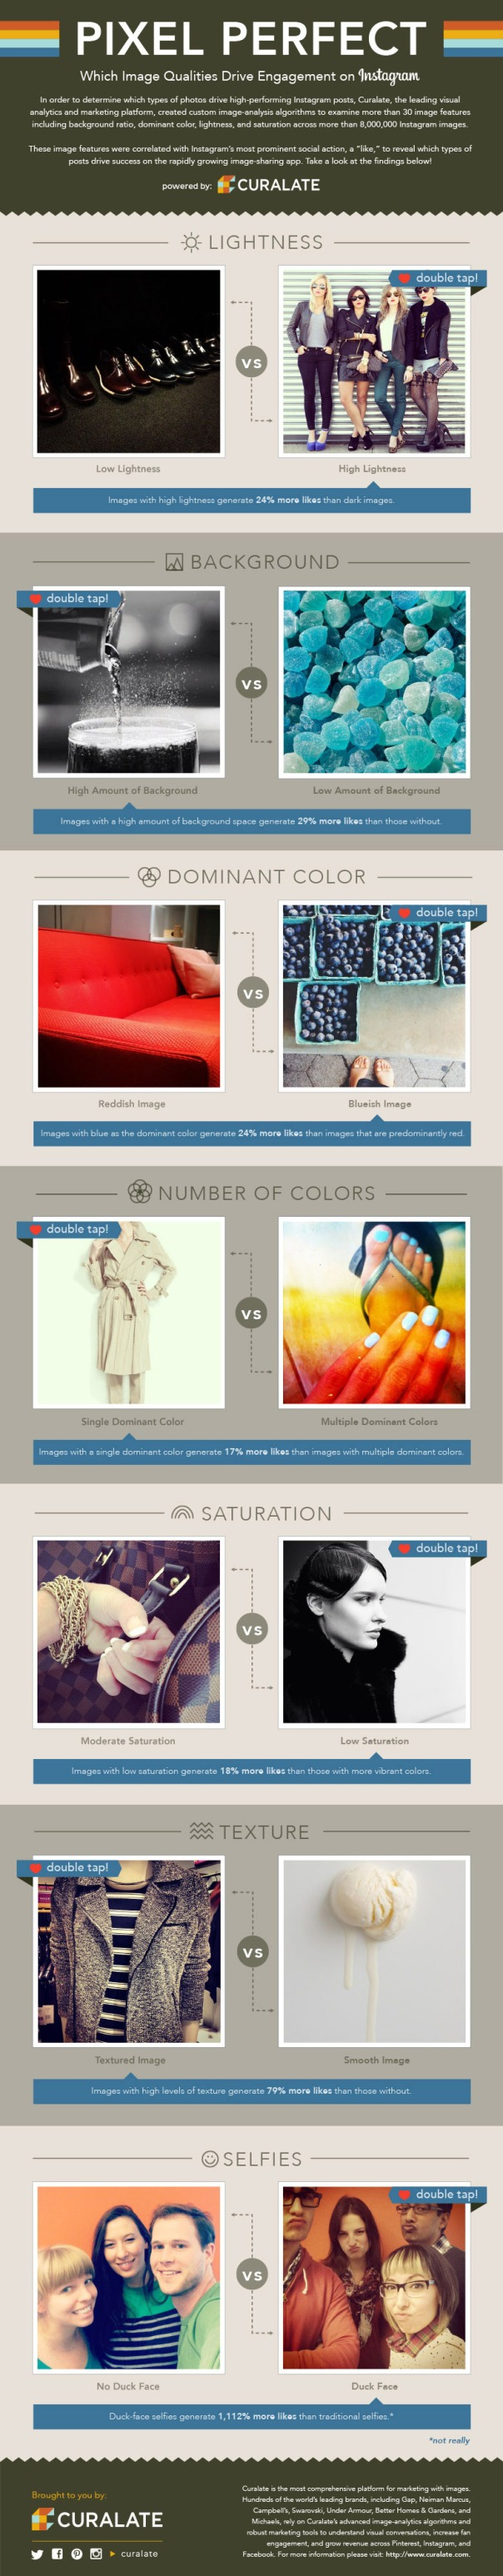 Inspiration: What Drives Instagram Success? (Infographic)